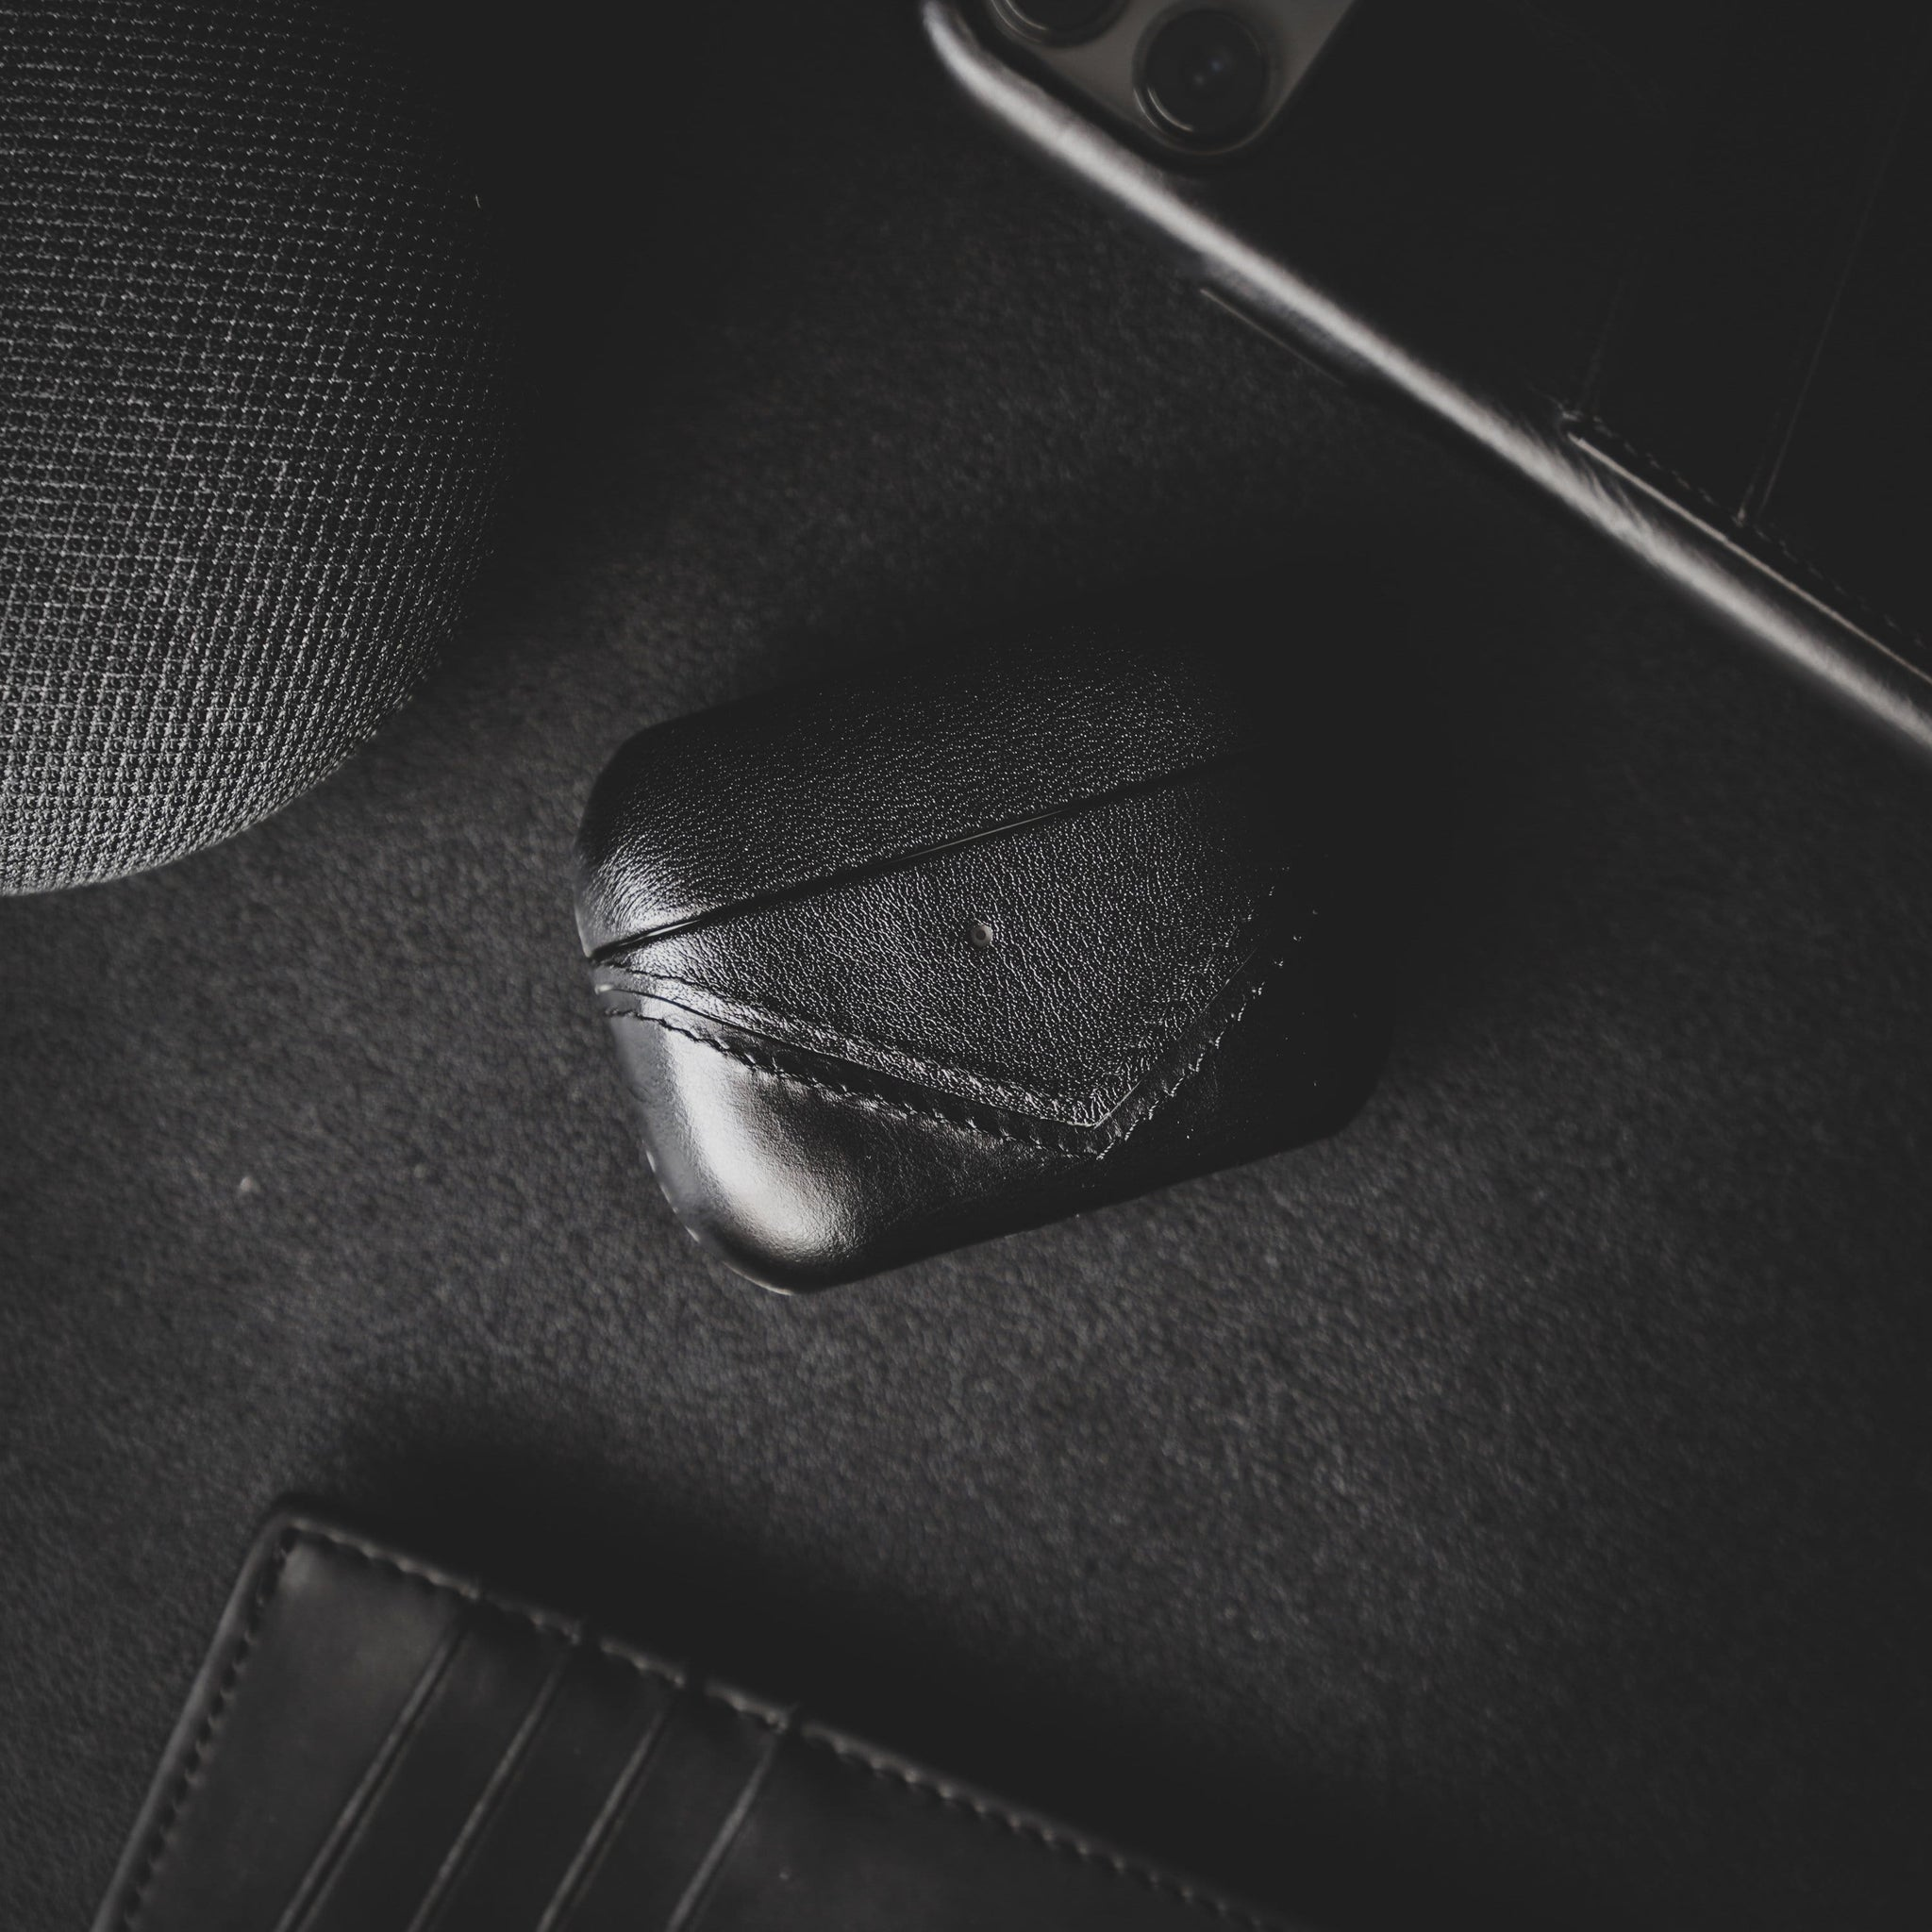 Leather Airpods Pro Case Black Edition Bullstrap